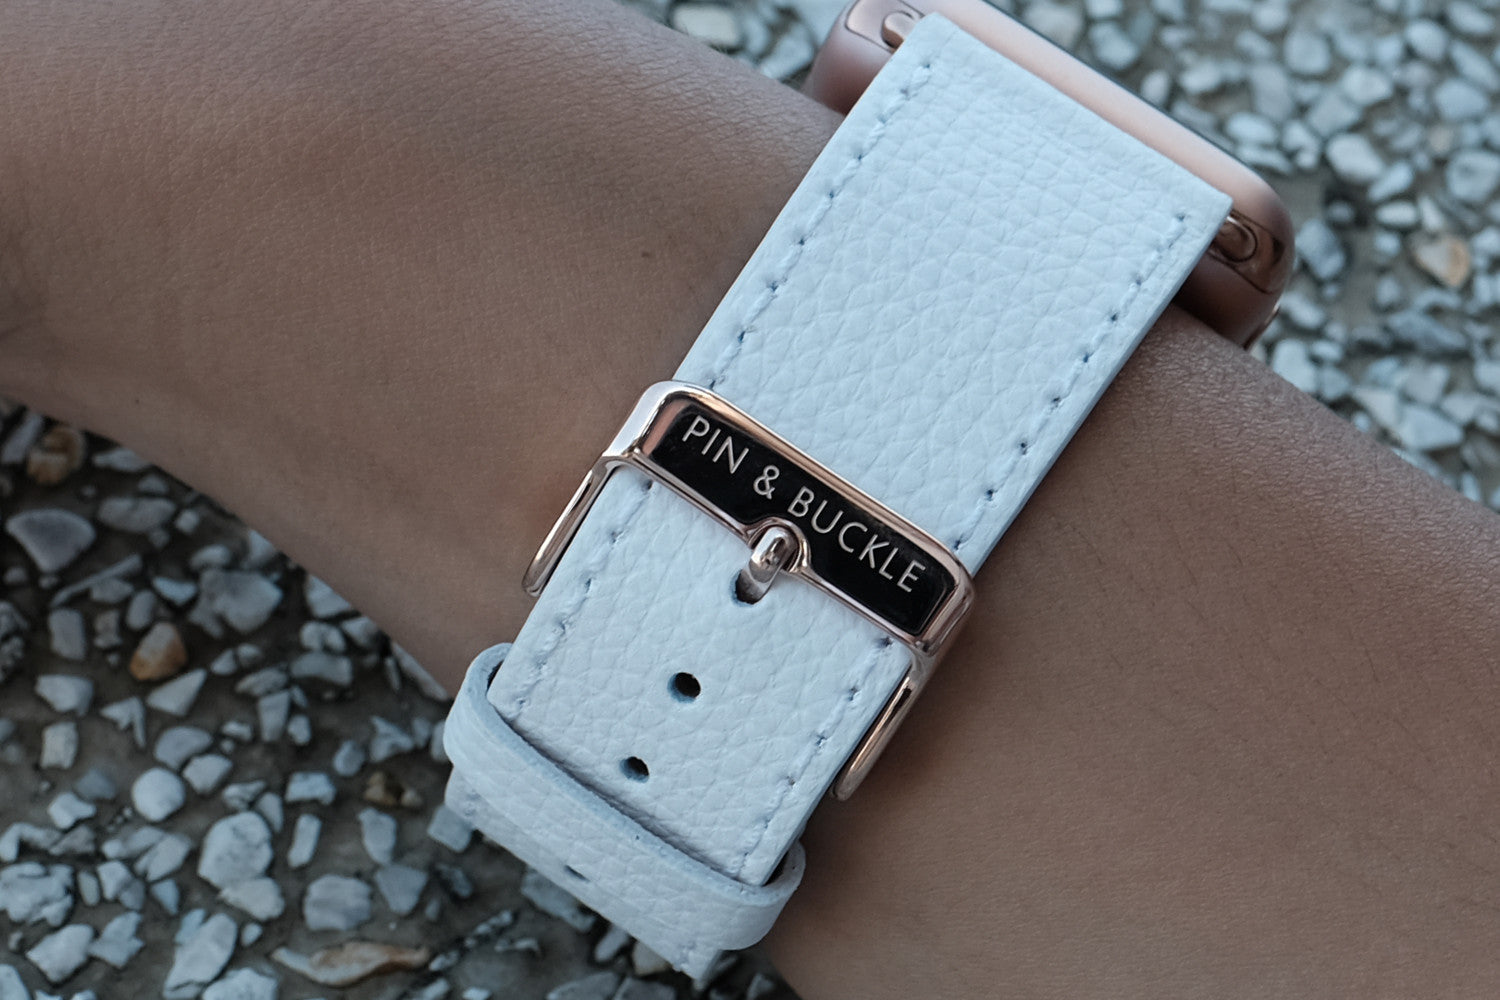 Pin and Buckle Apple Watch Bands - Epsom - Leather Apple Watch Band - Ivory White - Polished Stainless Steel Buckle